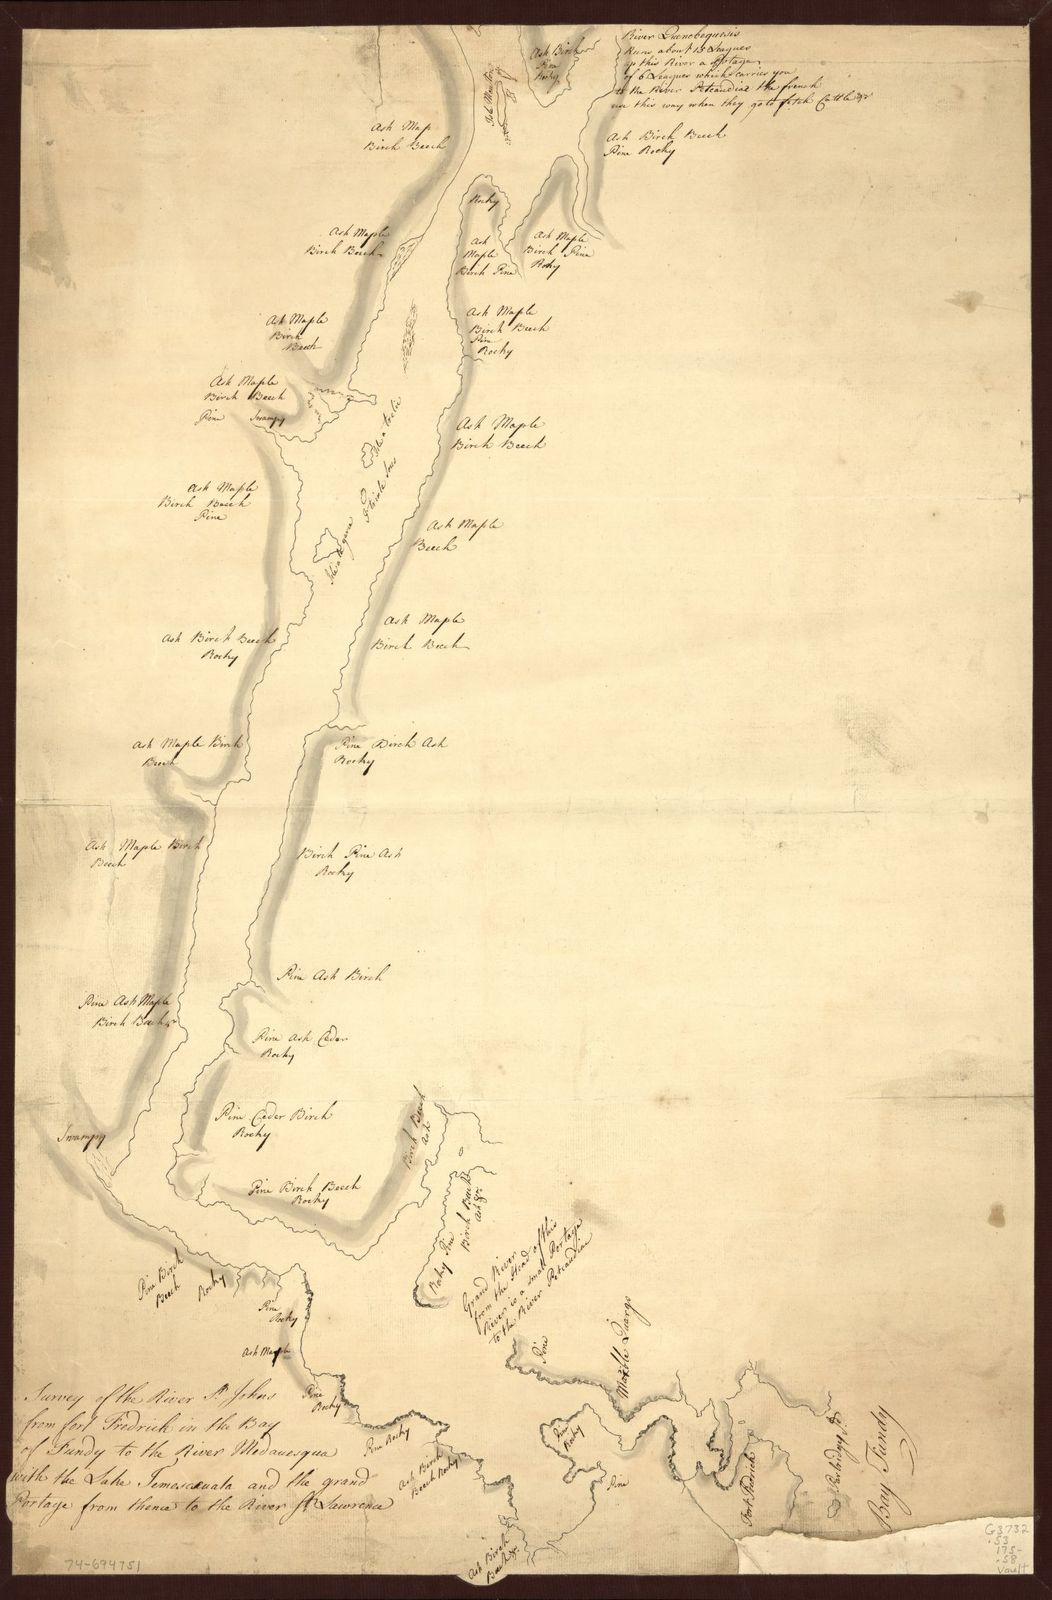 Survey of the River St. Johns from Fort Frederick in the Bay of Fundy to the River Medauesqua with the Lake Temesecuala and the Grand Portage from thence to the River St. Lawrence.